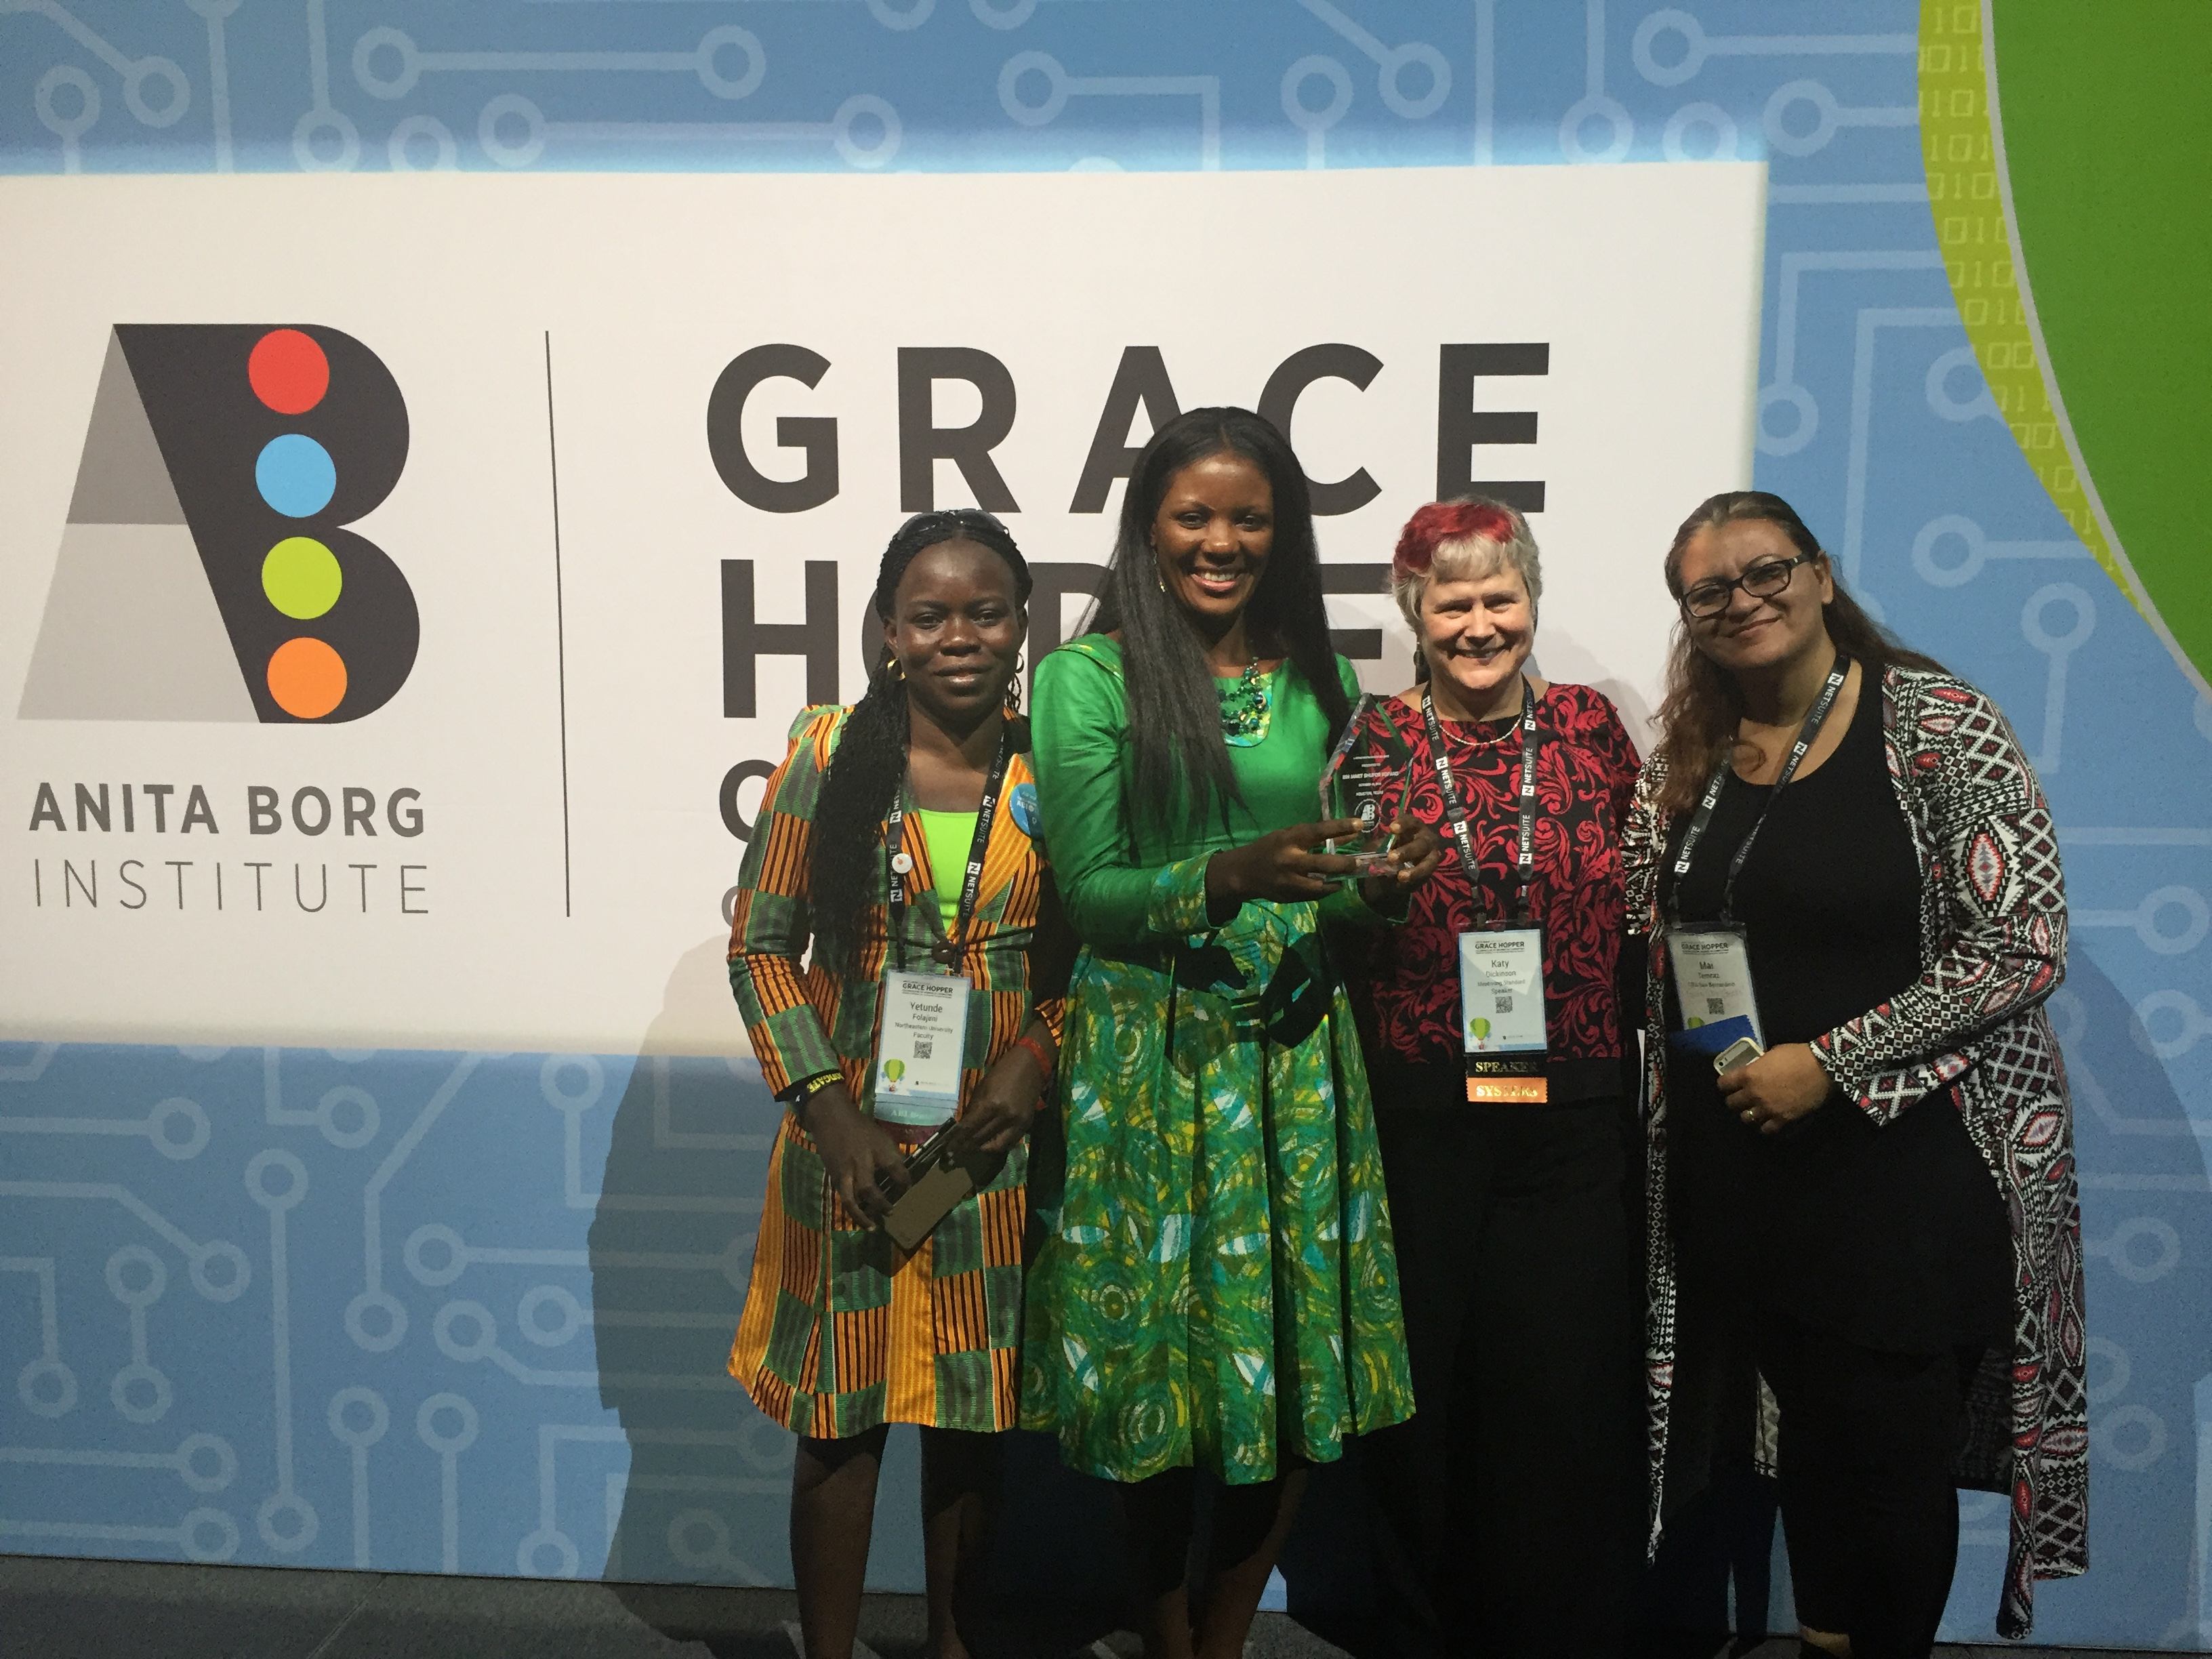 Janet Fofang wins Newton ABIE Educator Award at 2016 Hopper Conference, with Yetunde Folajimi, Katy Dickinson, Mai Temraz